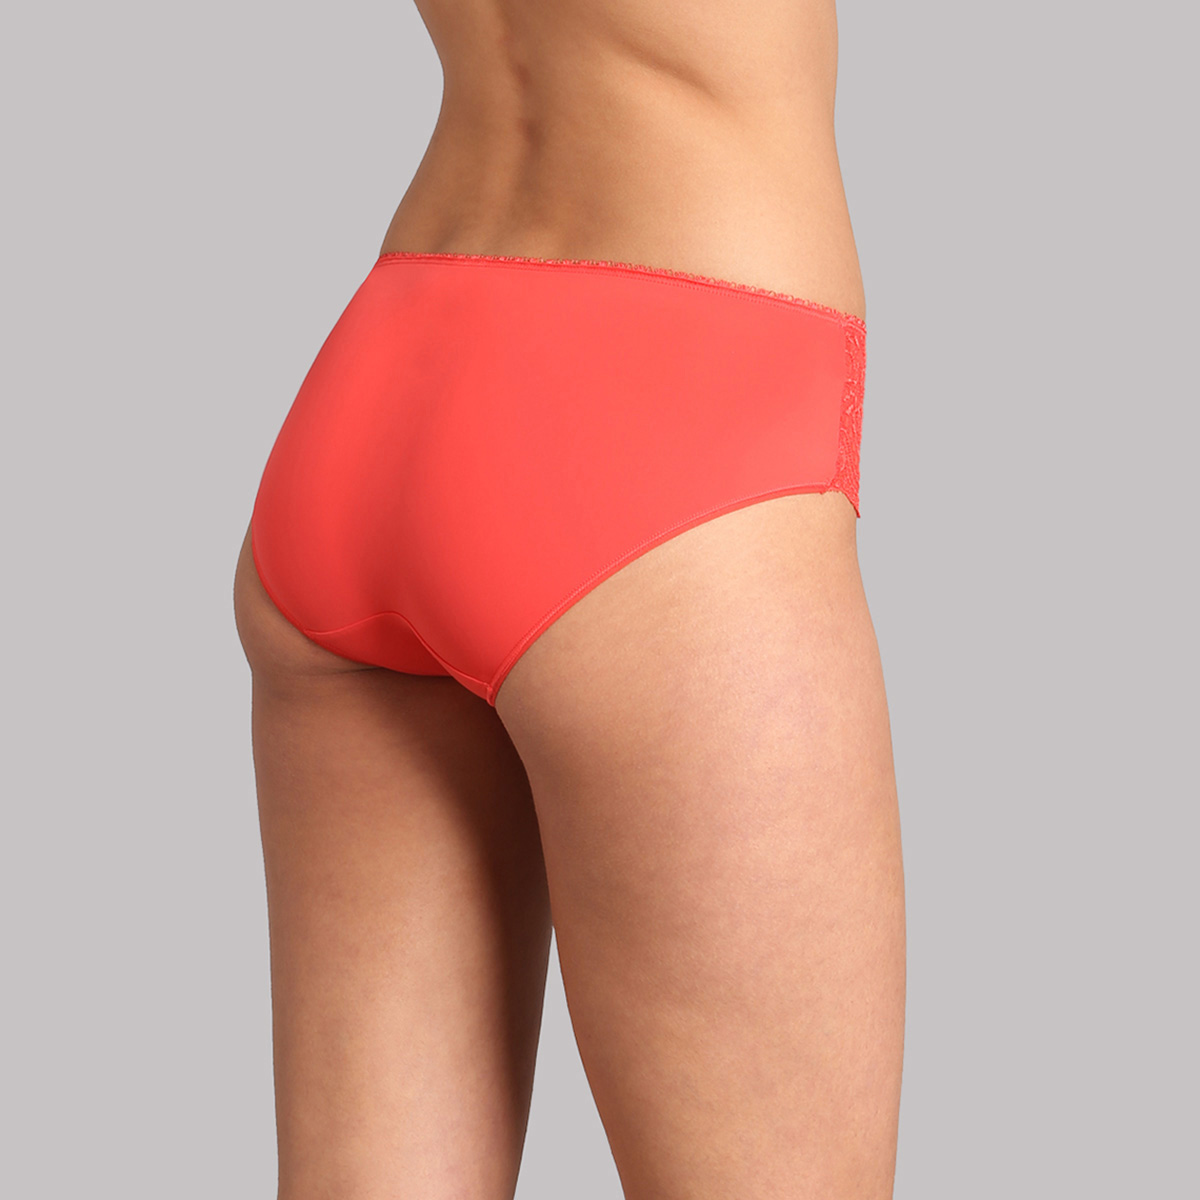 Midi knickers in coral lace - Flower Elegance, , PLAYTEX